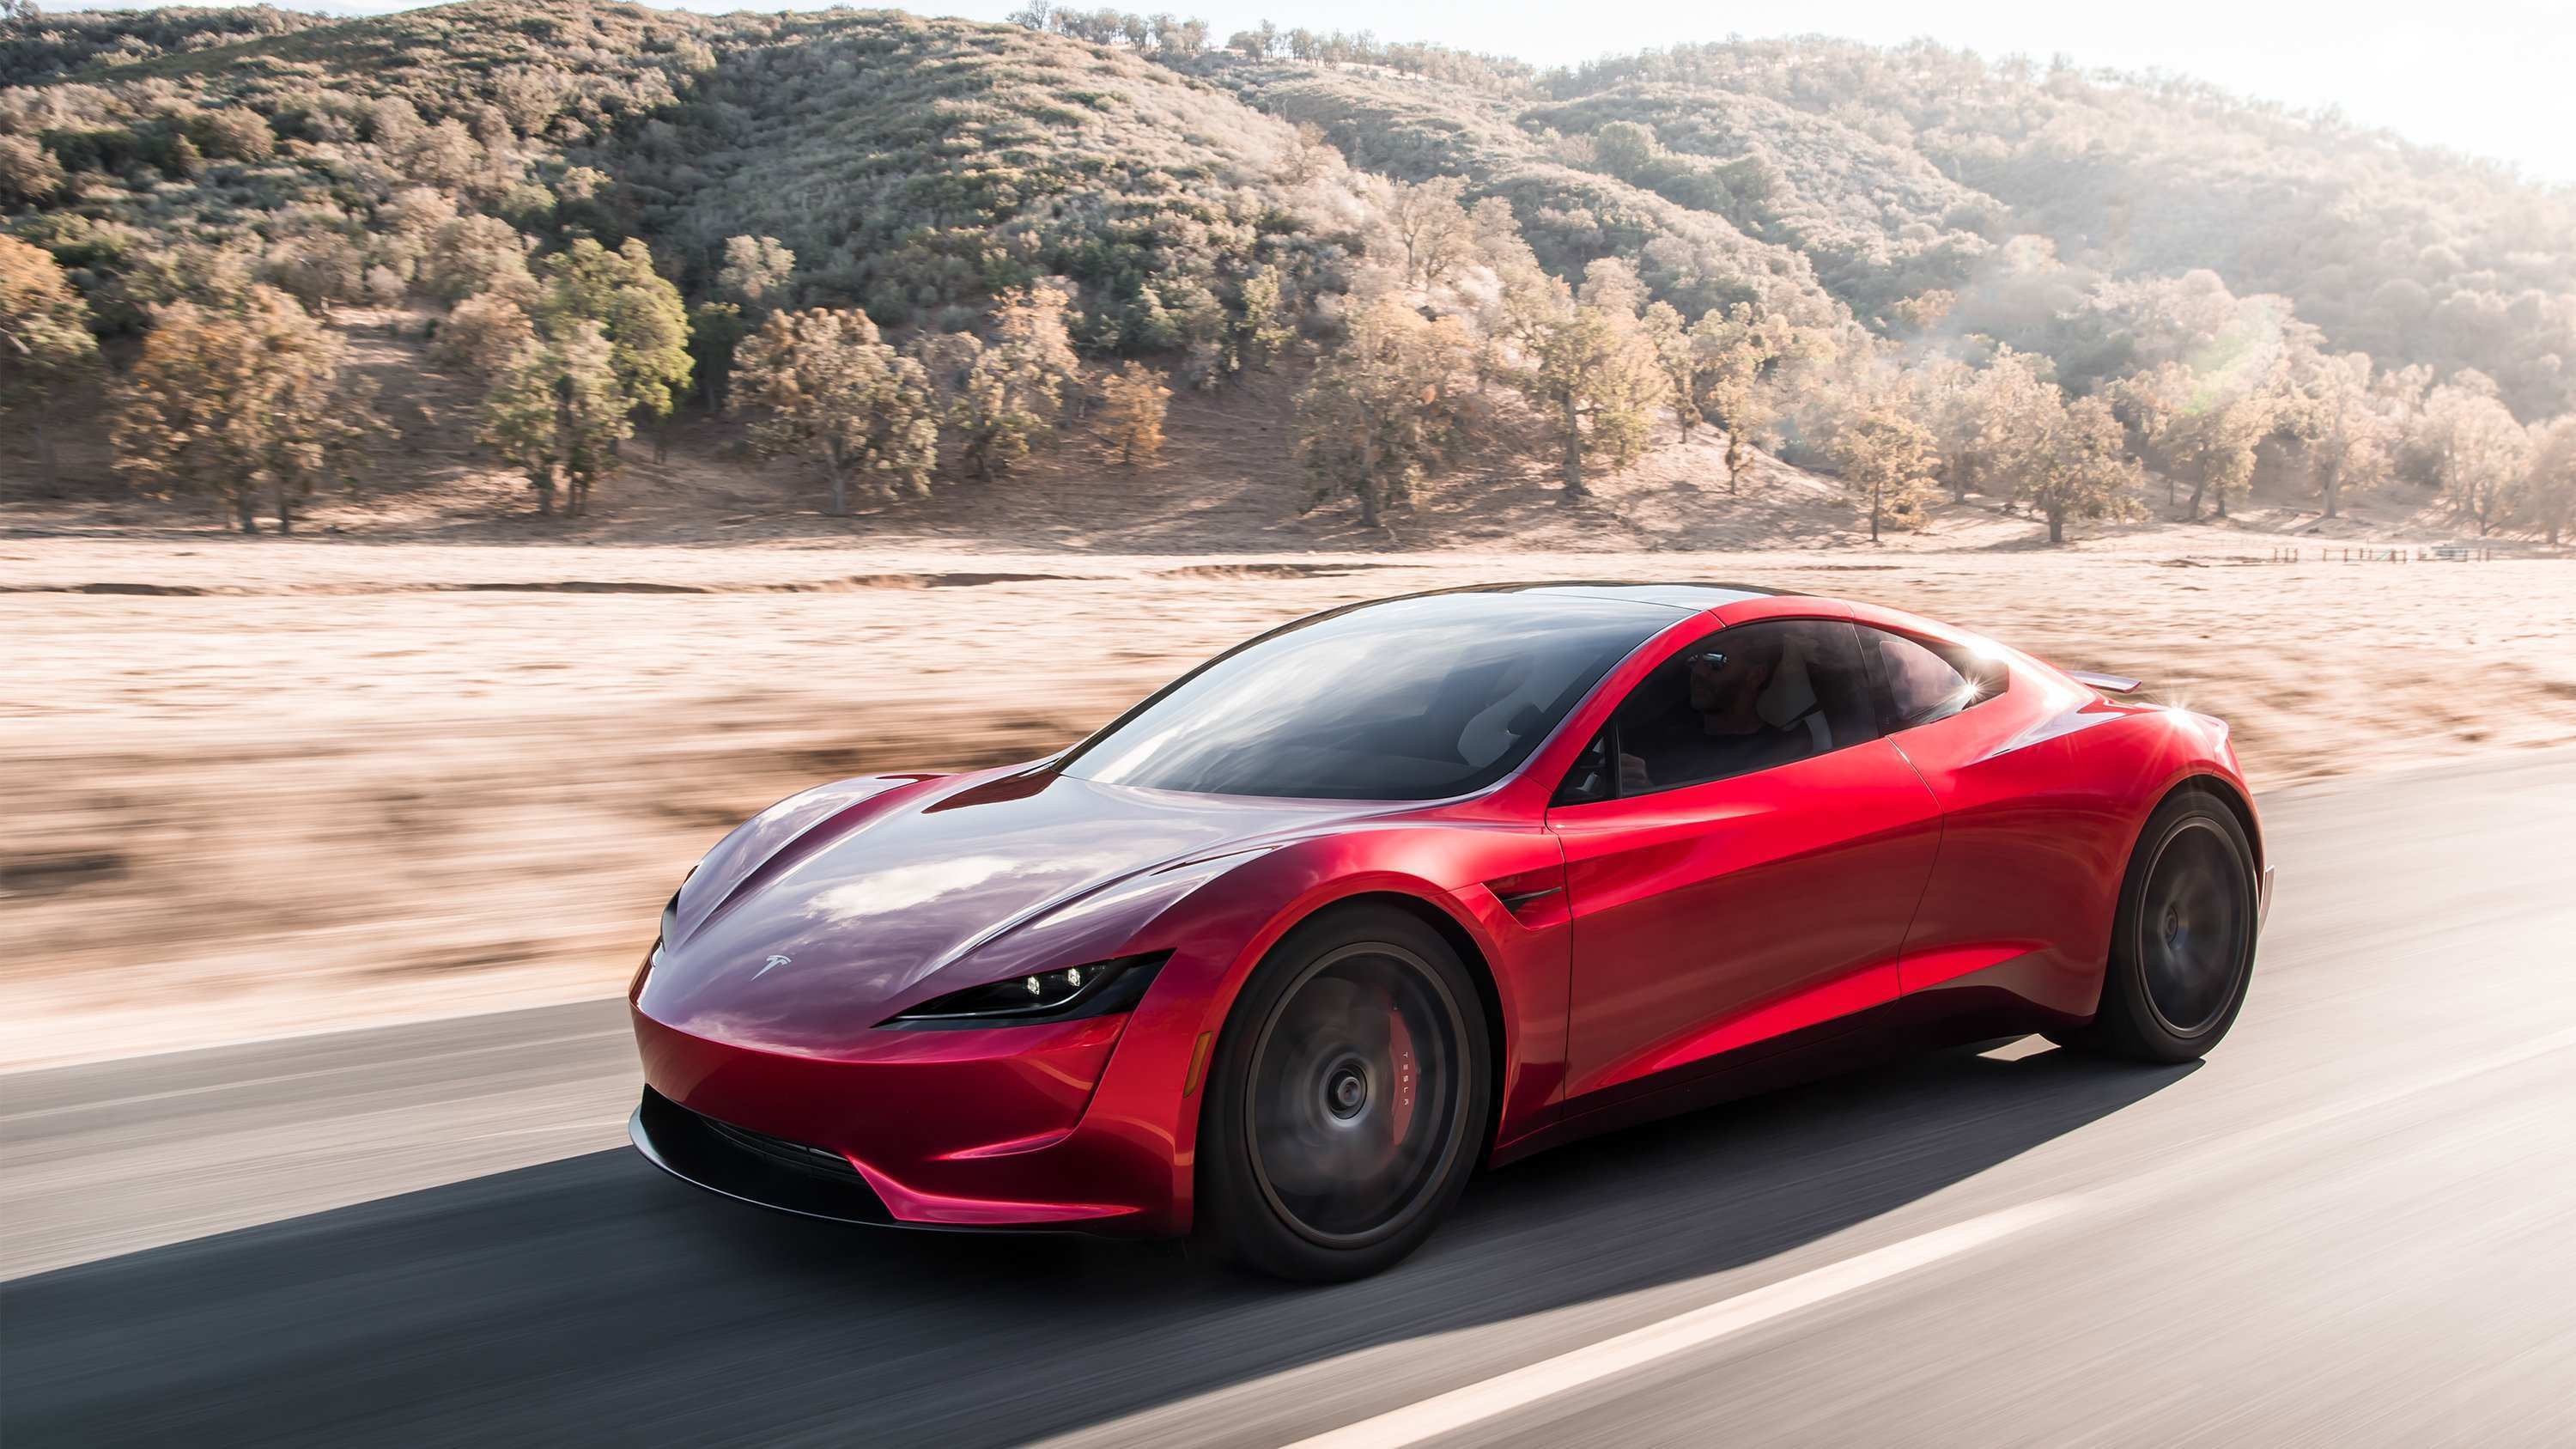 72 The 2020 Tesla Roadster Weight 3 Exterior and Interior by 2020 Tesla Roadster Weight 3